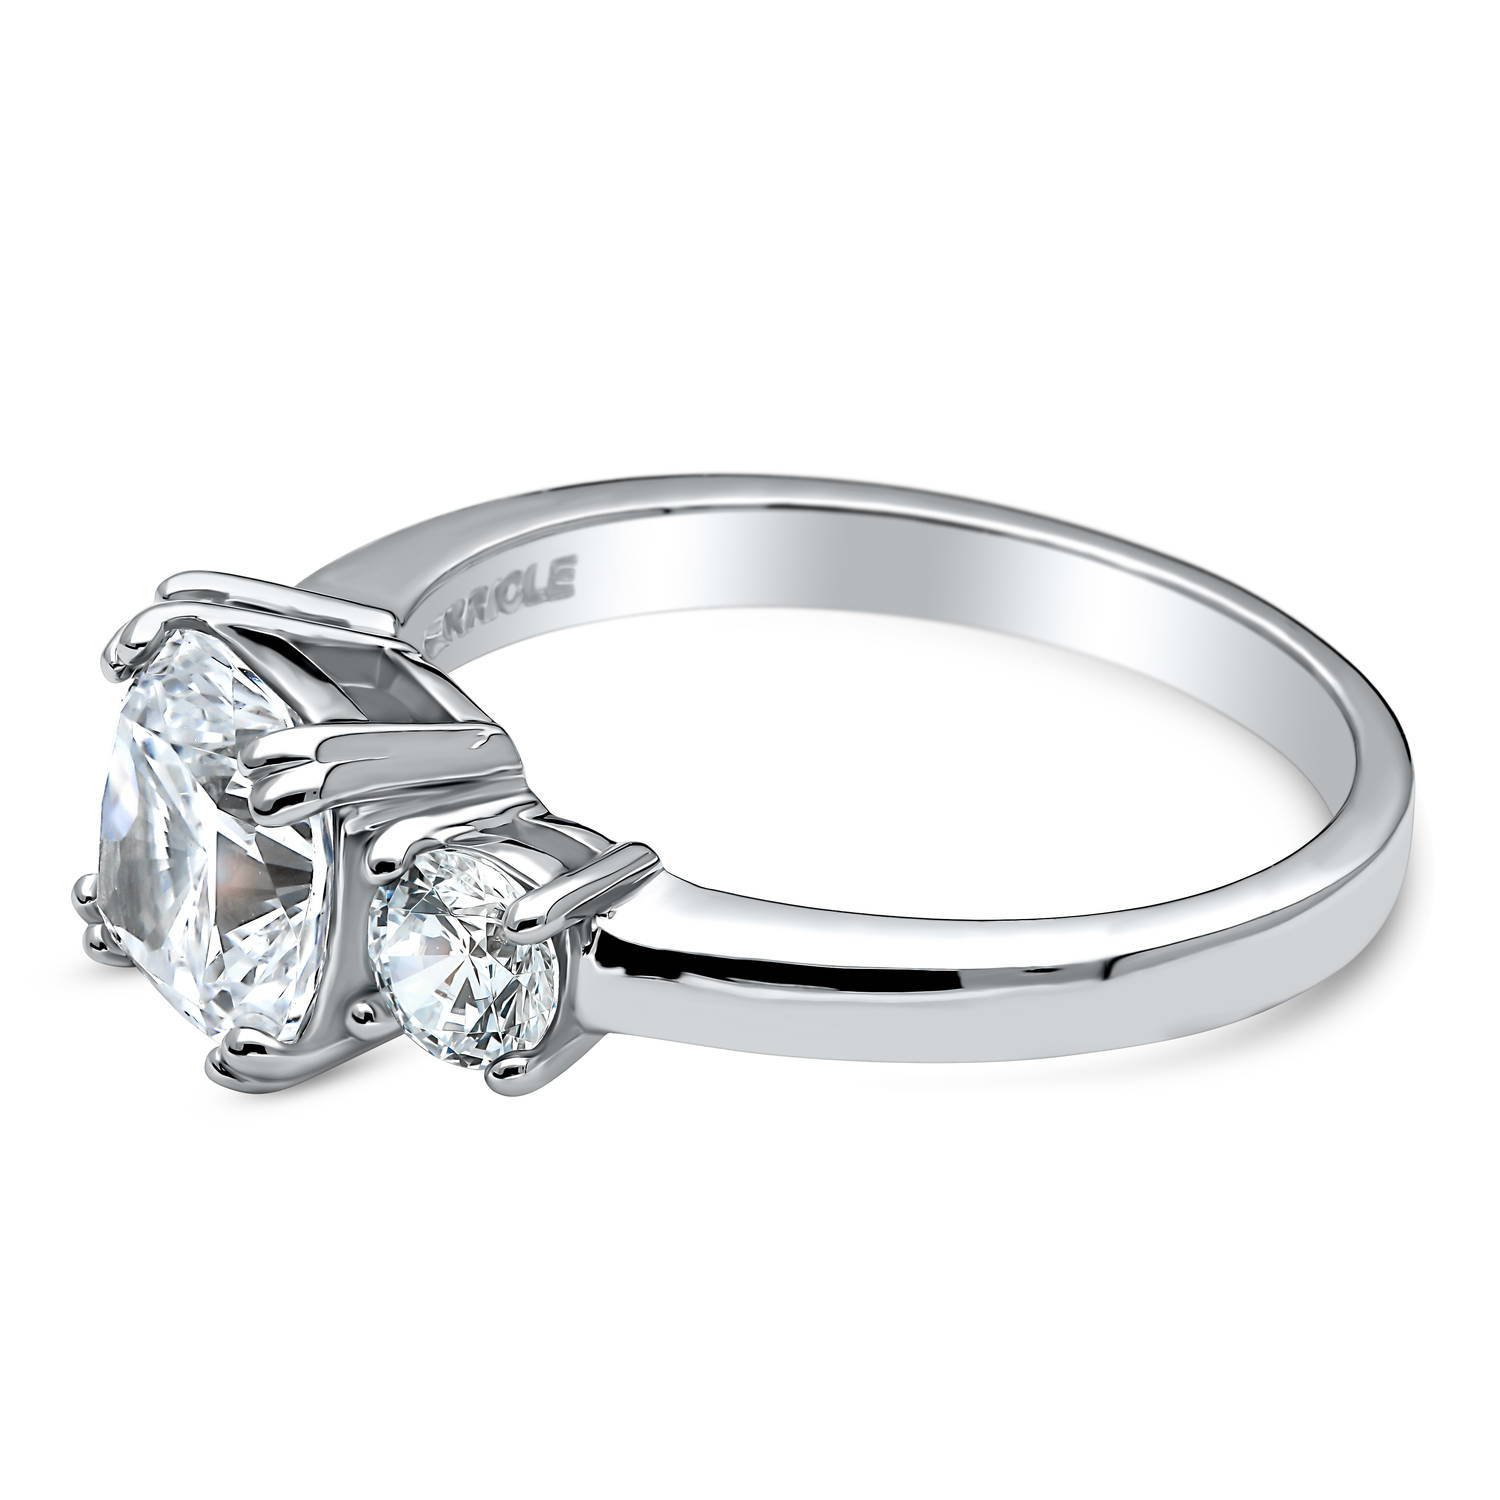 BERRICLE Rhodium Plated Silver Cushion Cut Cubic Zirconia CZ 3-Stone Promise Engagement Ring Size 8.5 by BERRICLE (Image #3)